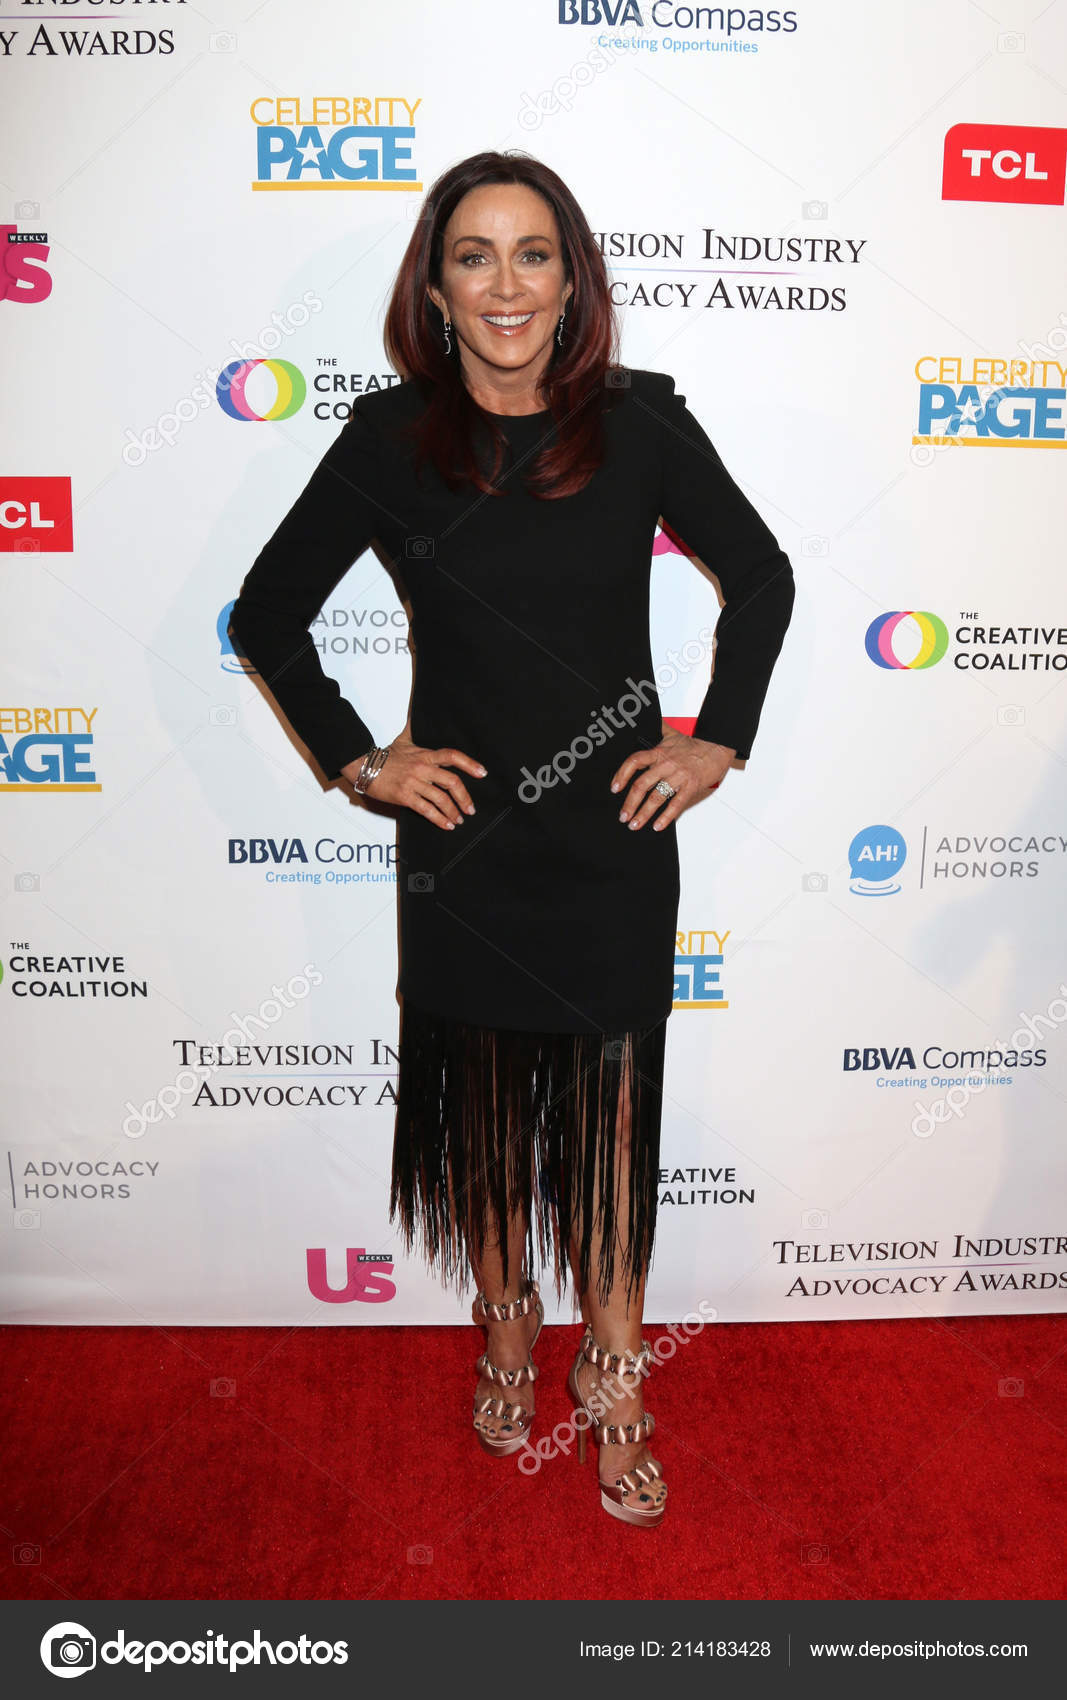 b873cf08d49 LOS ANGELES - SEP 15: Patricia Heaton at the 2018 Television Industry  Advocacy Awards at the Sofitel Los Angeles on September 15, 2018 in Beverly  Hills, ...